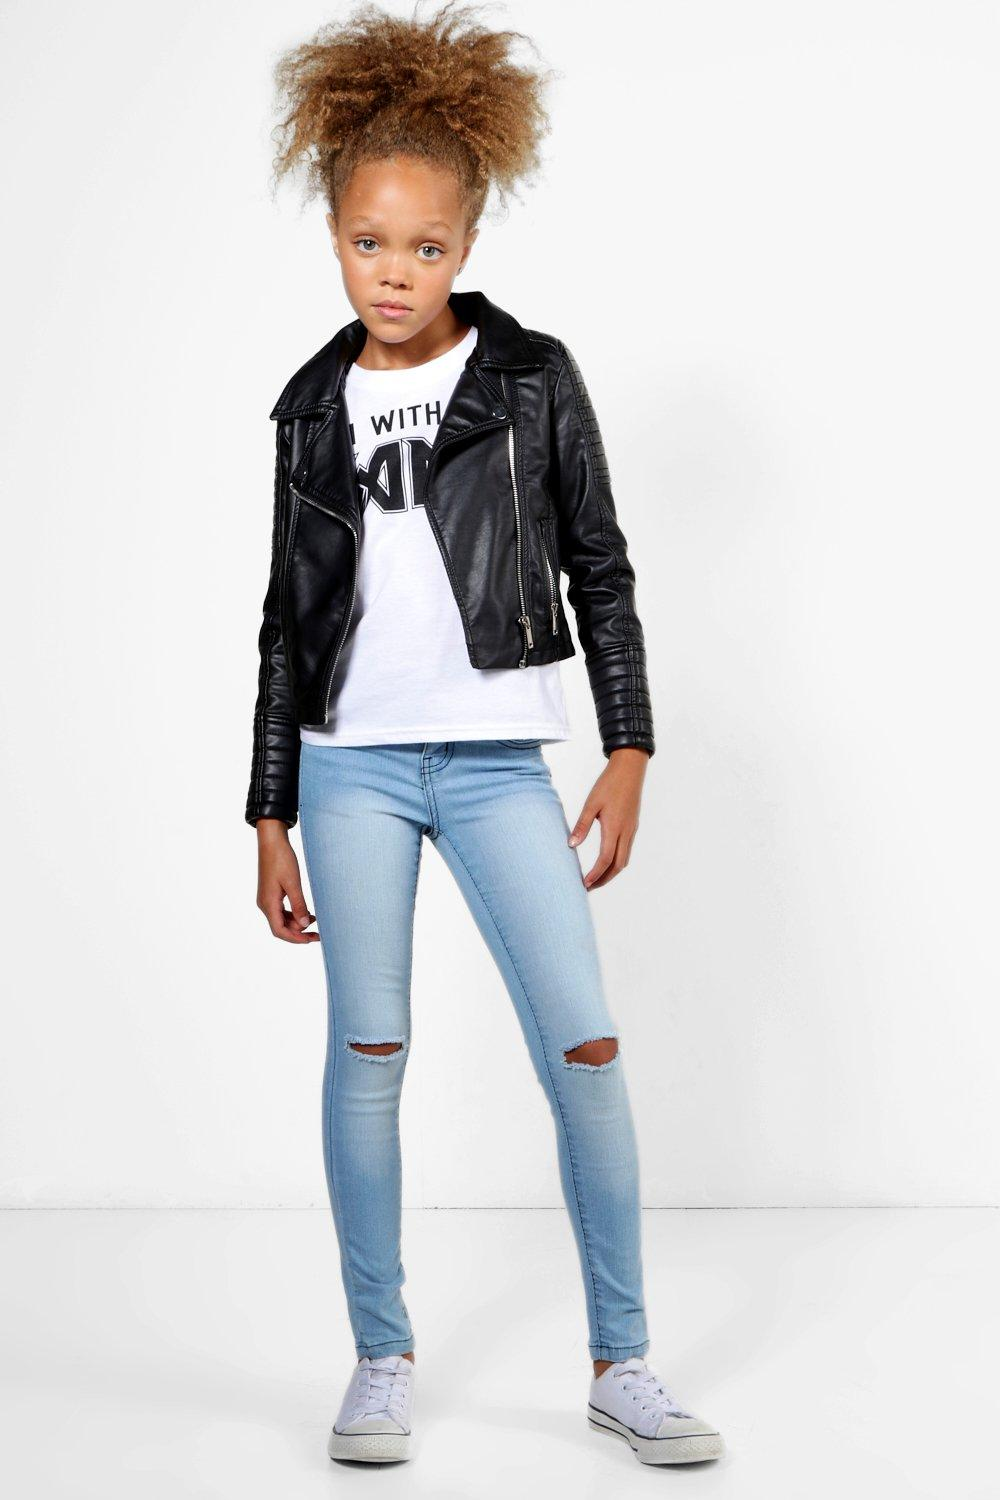 c5428a5d98 Girls Skinny Ripped Knee Jeans. Hover to zoom